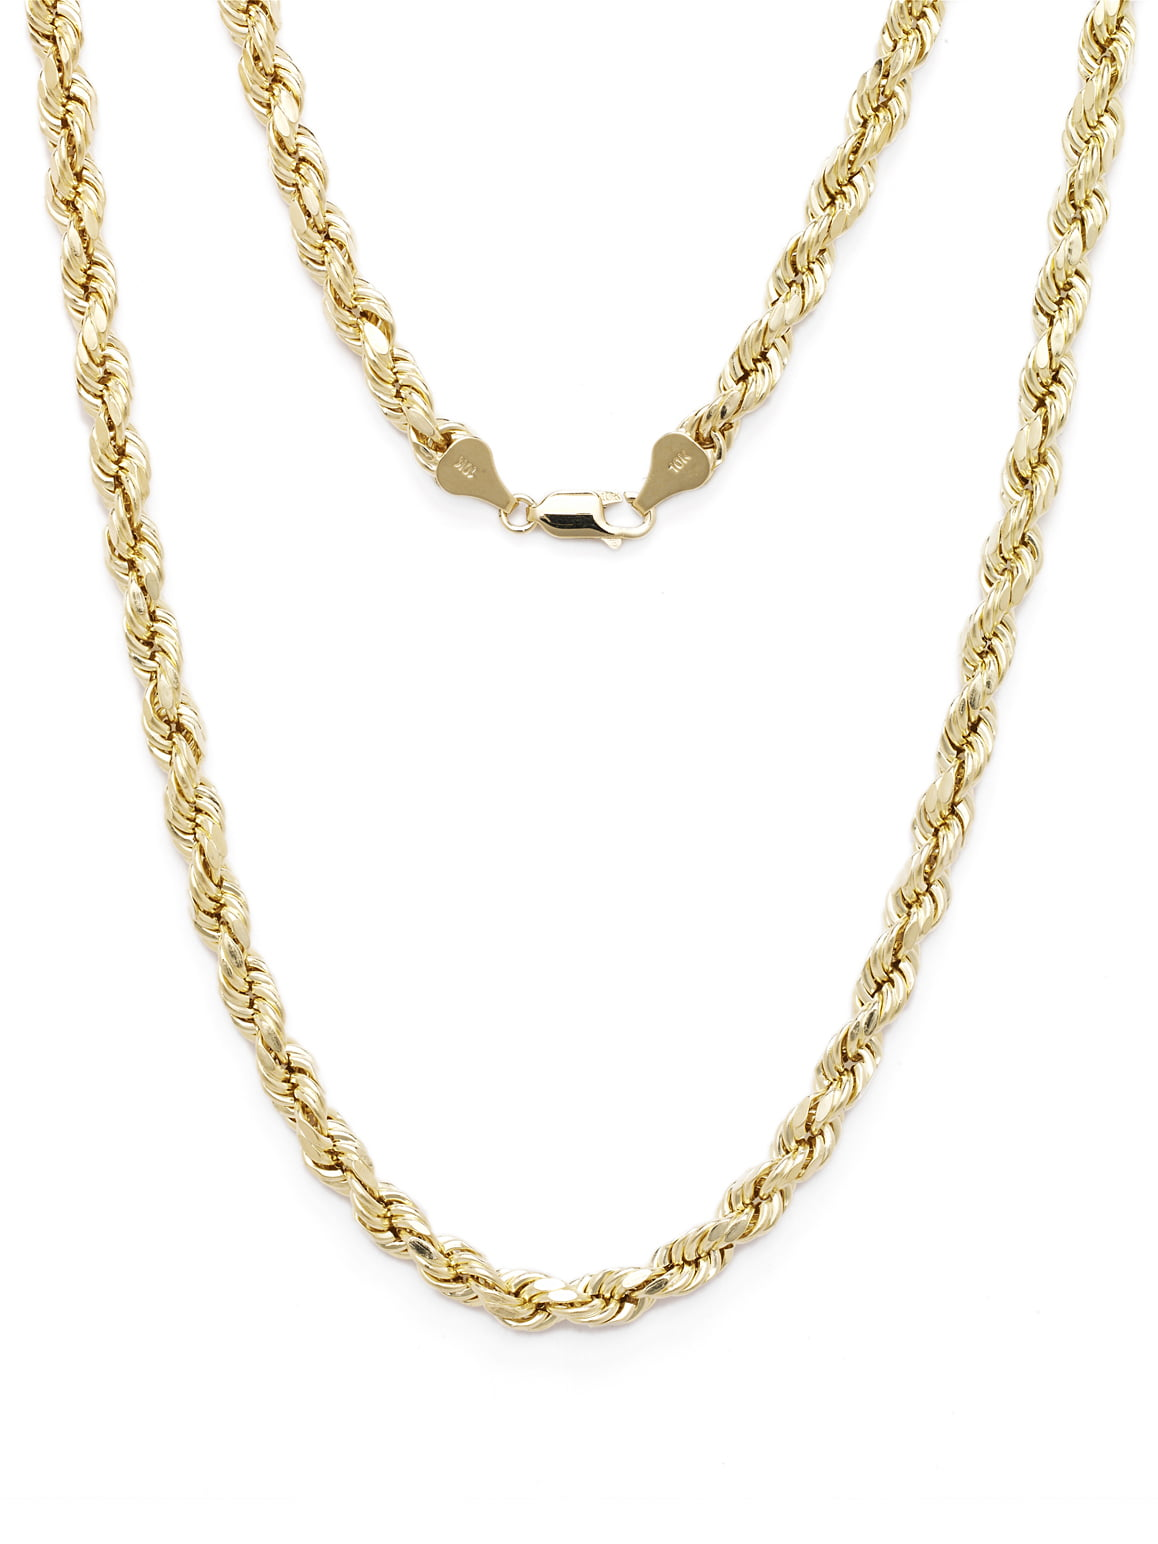 10k Yellow Gold Diamond Cut Hollow Rope Chain Necklace with Lobster Claw Clasp for Men & Women, 2mm by Glad Gold